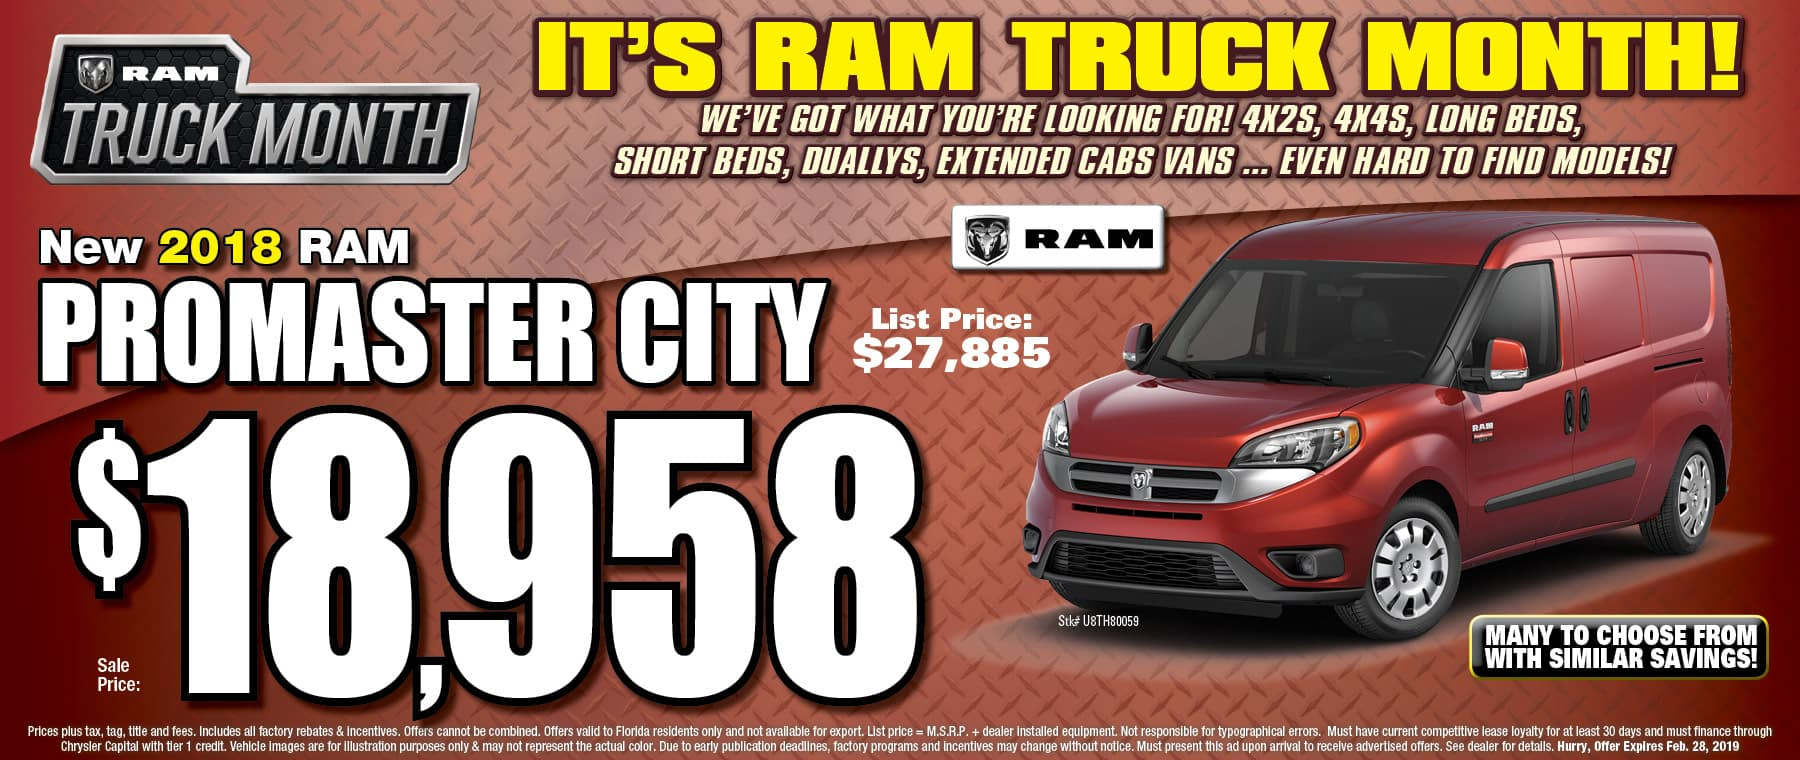 New RAM Promaster City! - University Dodge RAM!